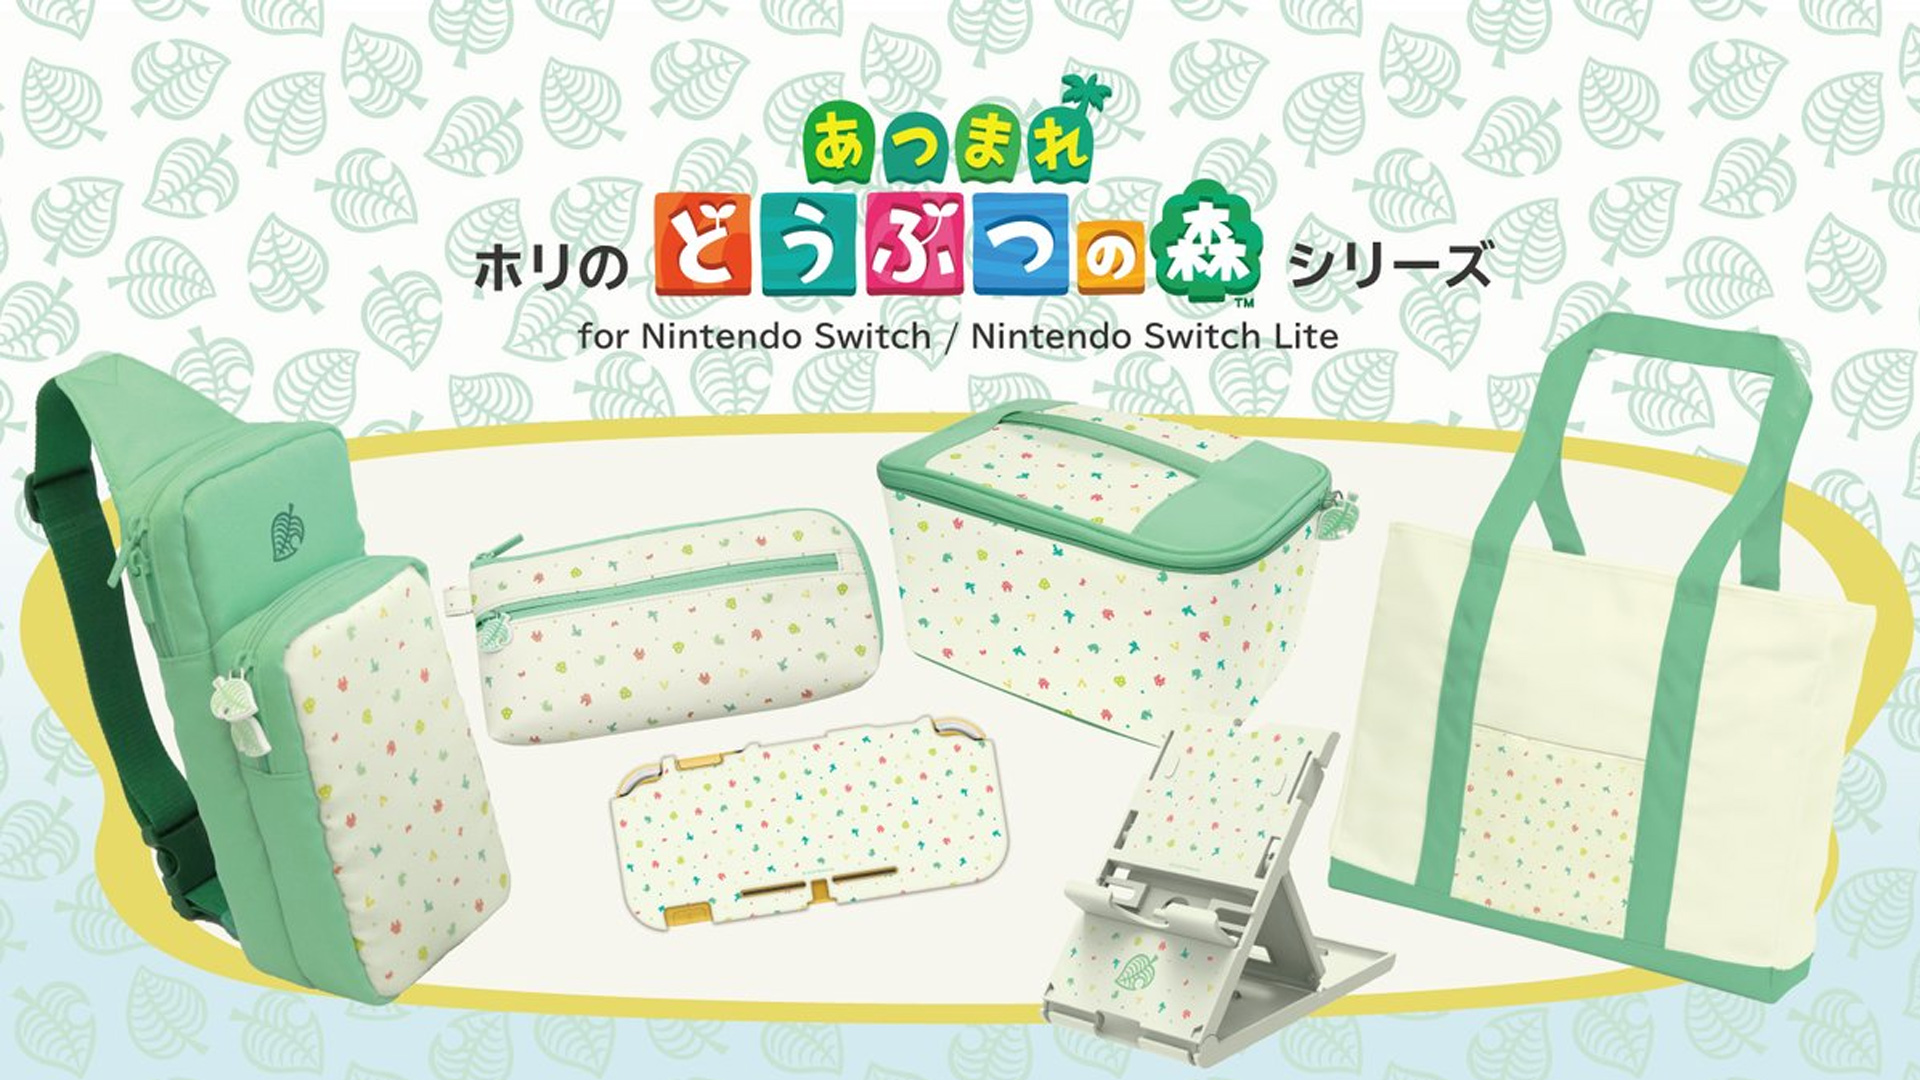 Hori Announces Animal Crossing Themed Switch Accessories